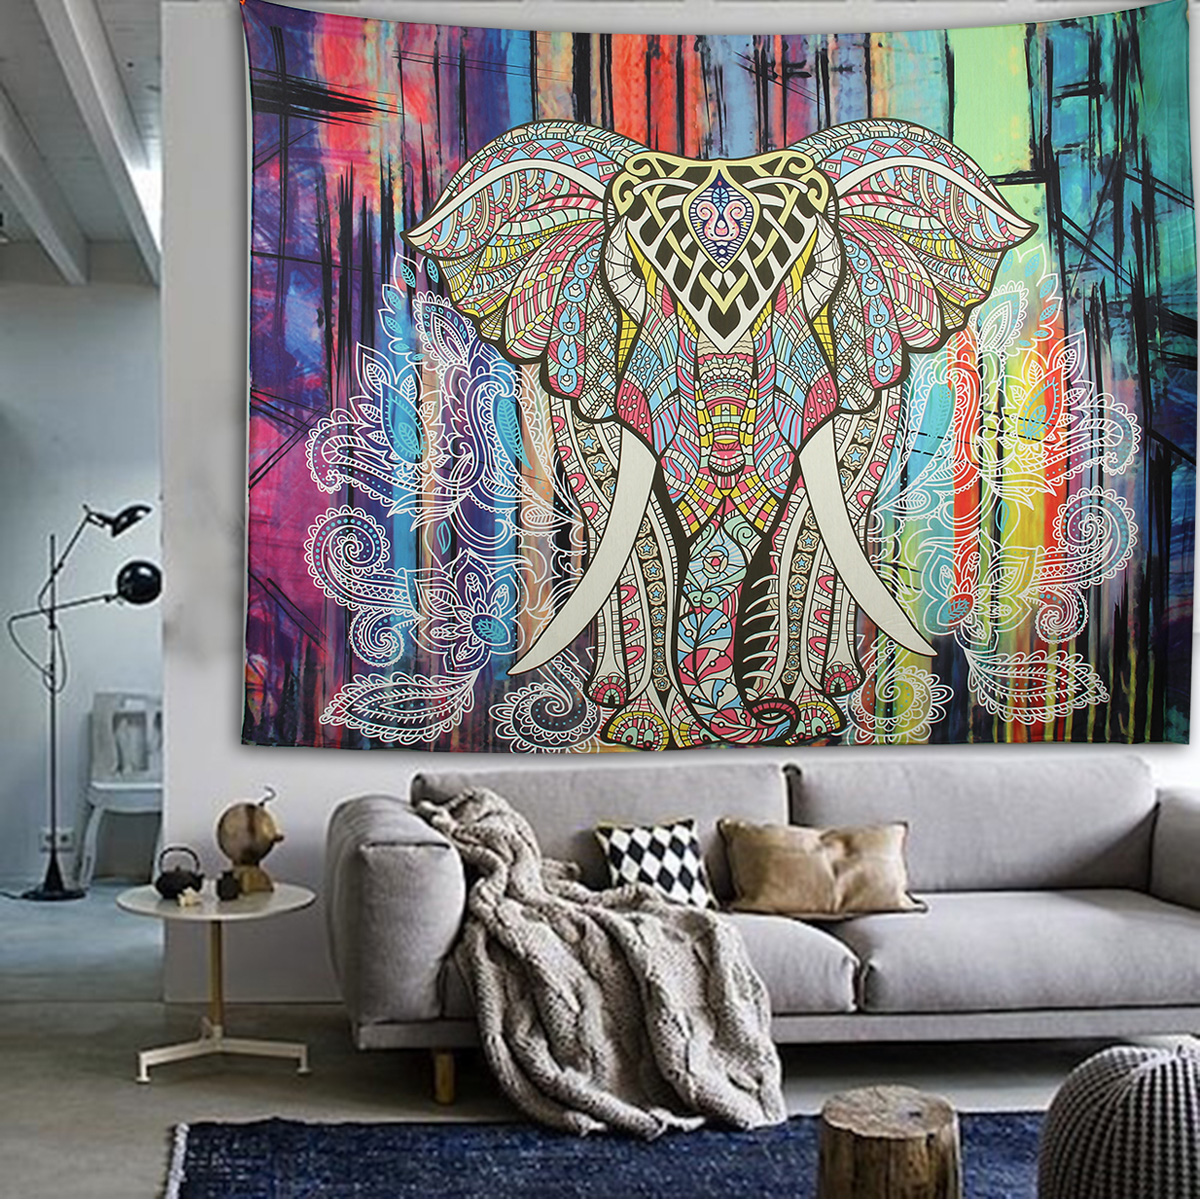 Elephant Mandala Tapestry Throw Towel Hippie Tapestry Floral Printed Home Decor Wall Tapestries Bedspread 210*150CM 12